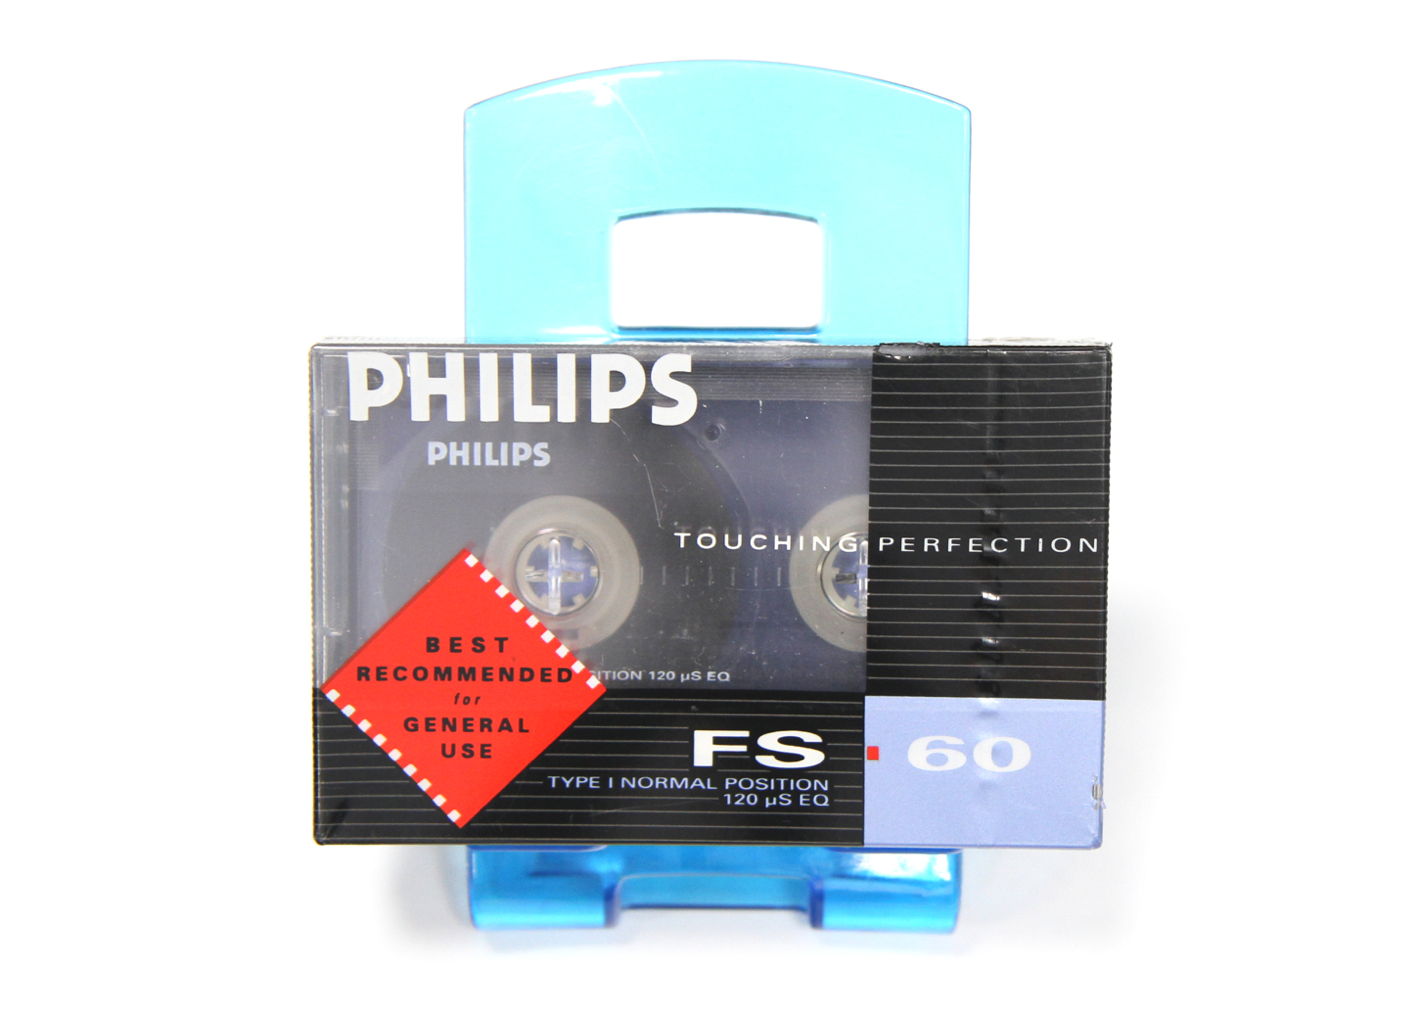 PHILIPS FS-60 Position Normal